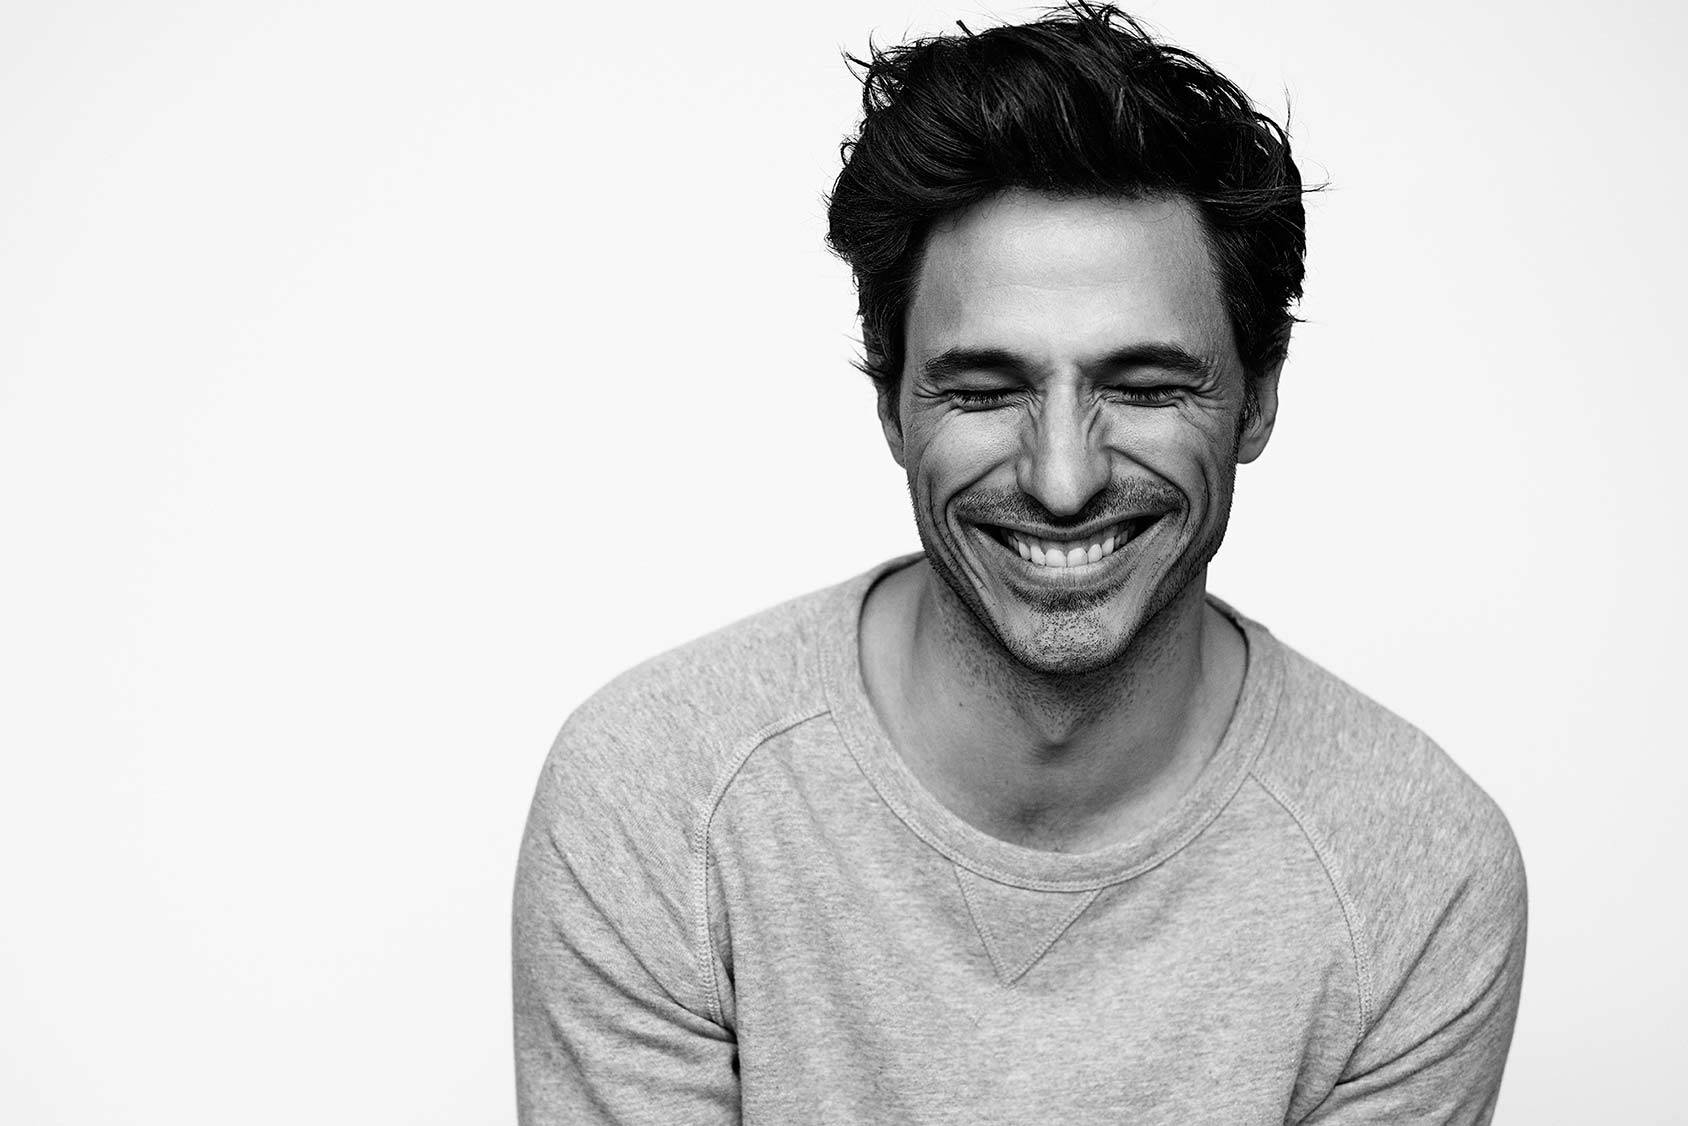 Spanish top model Andrés Velencoso, Joel Rhodin/Mink Management.